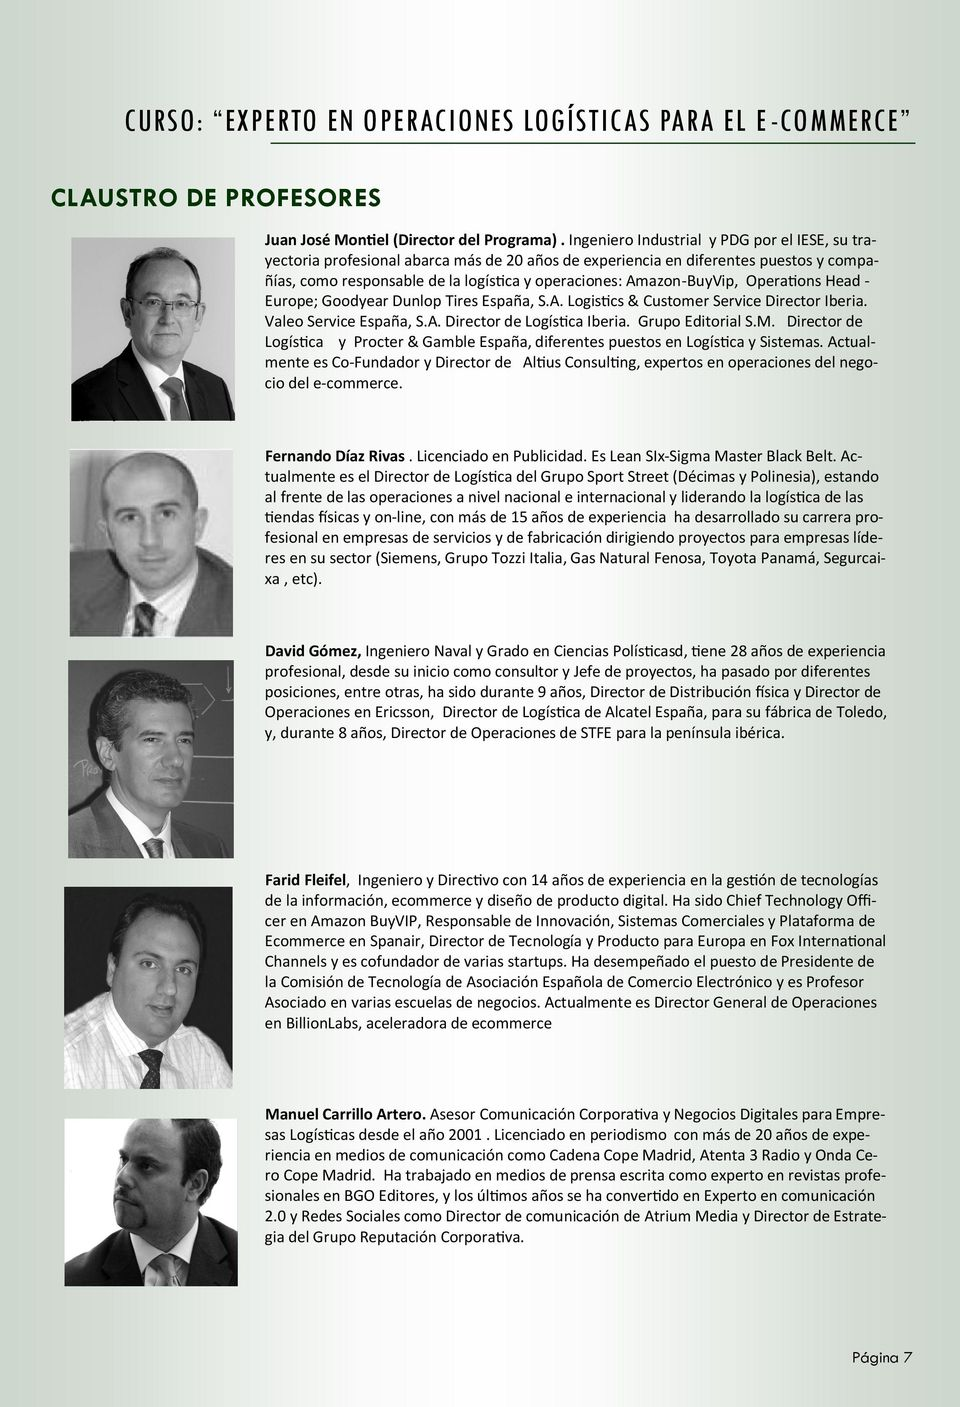 Amazon-BuyVip, Operations Head - Europe; Goodyear Dunlop Tires España, S.A. Logistics & Customer Service Director Iberia. Valeo Service España, S.A. Director de Logística Iberia. Grupo Editorial S.M.